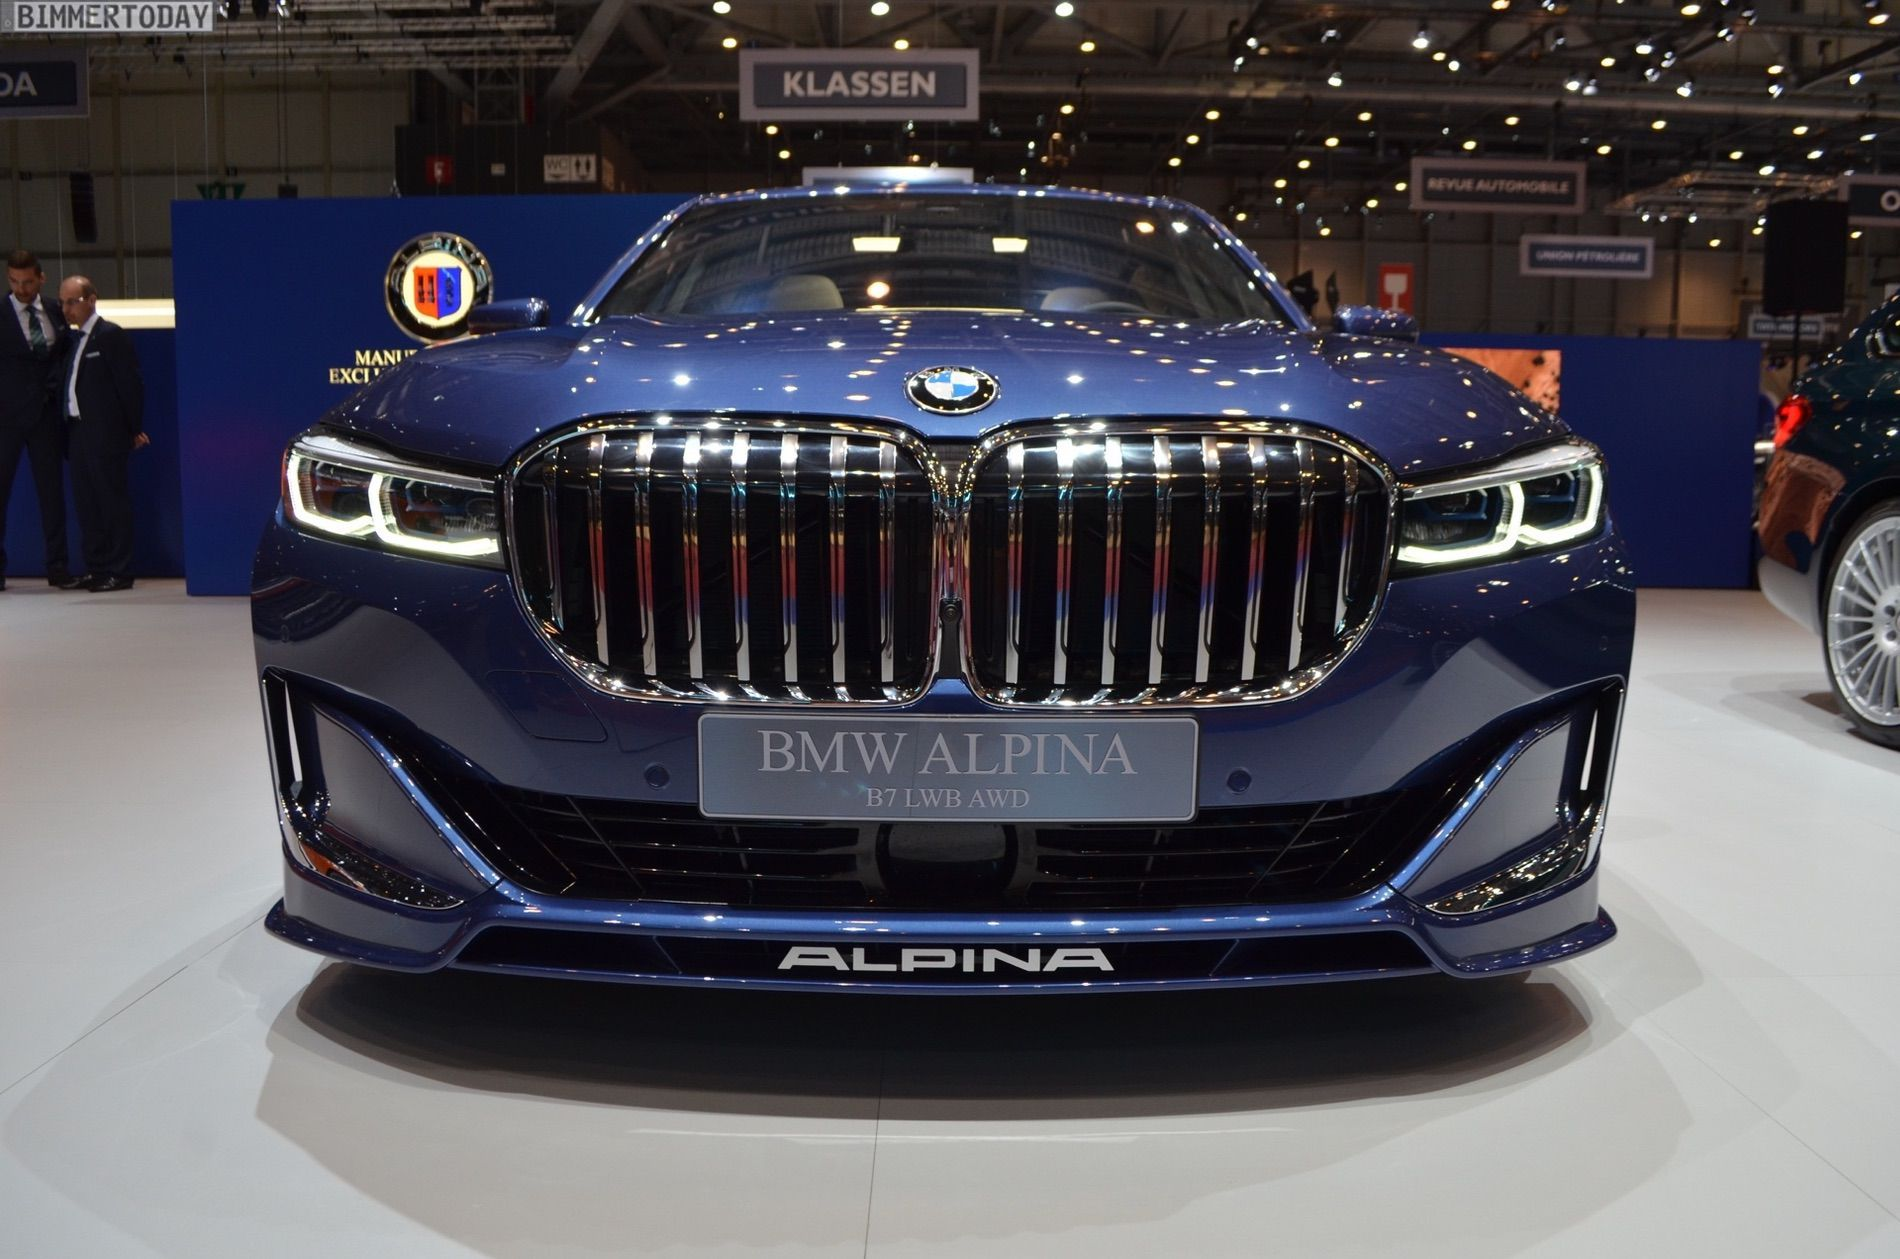 Geneva 2019 Live Photos Of Alpina B7 Facelift In Blue Color With